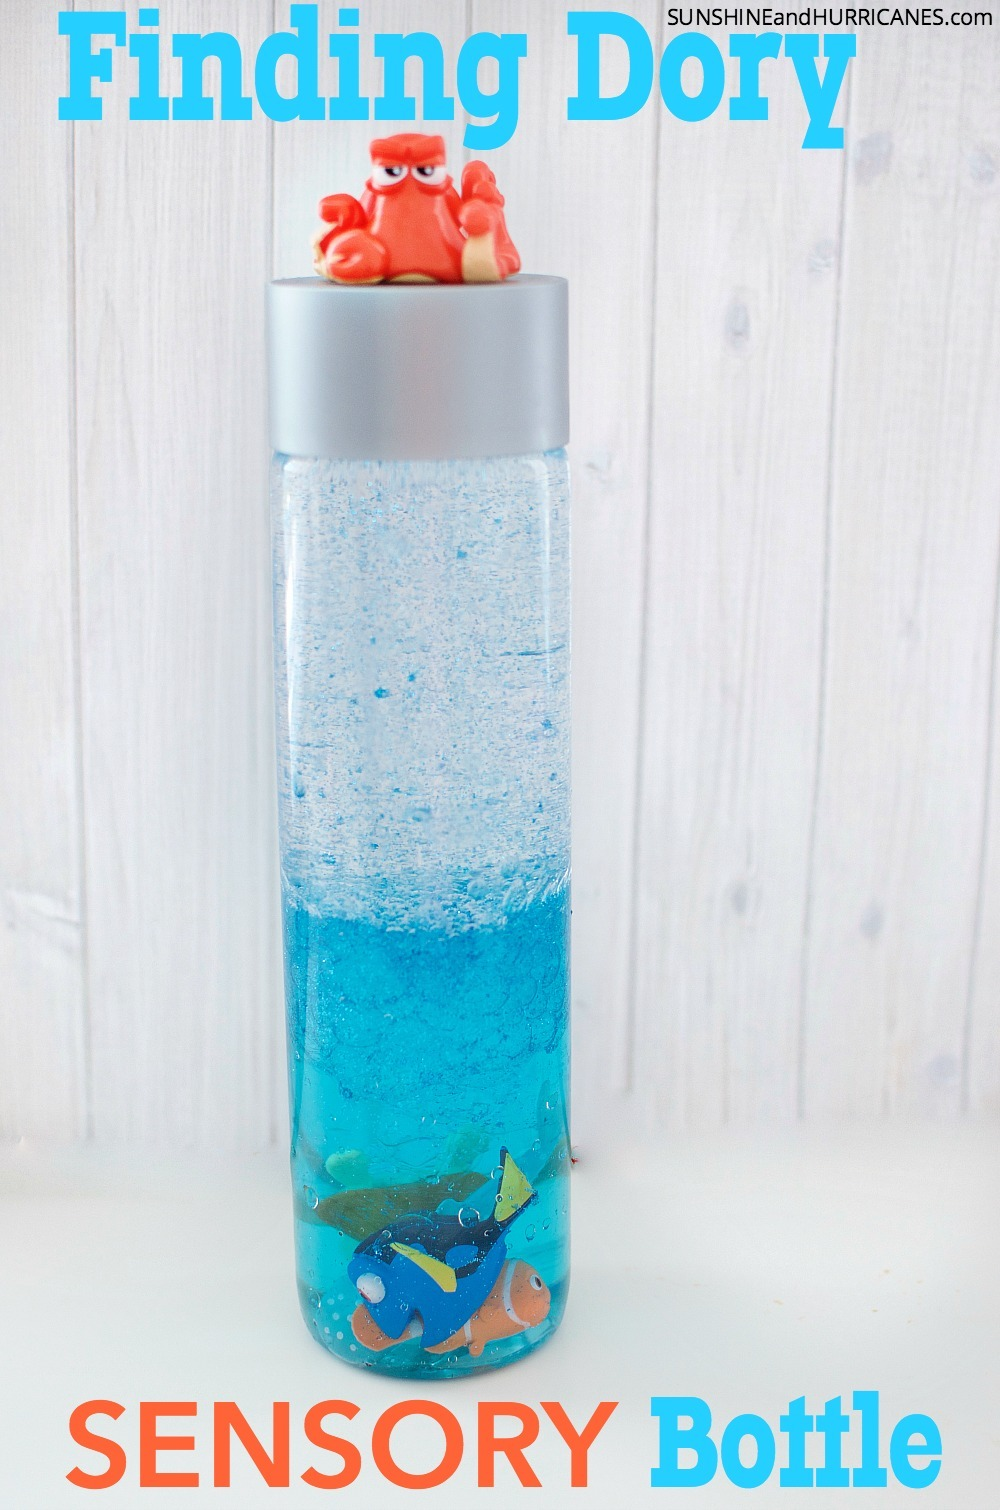 Finding Dory Sensory Bottle